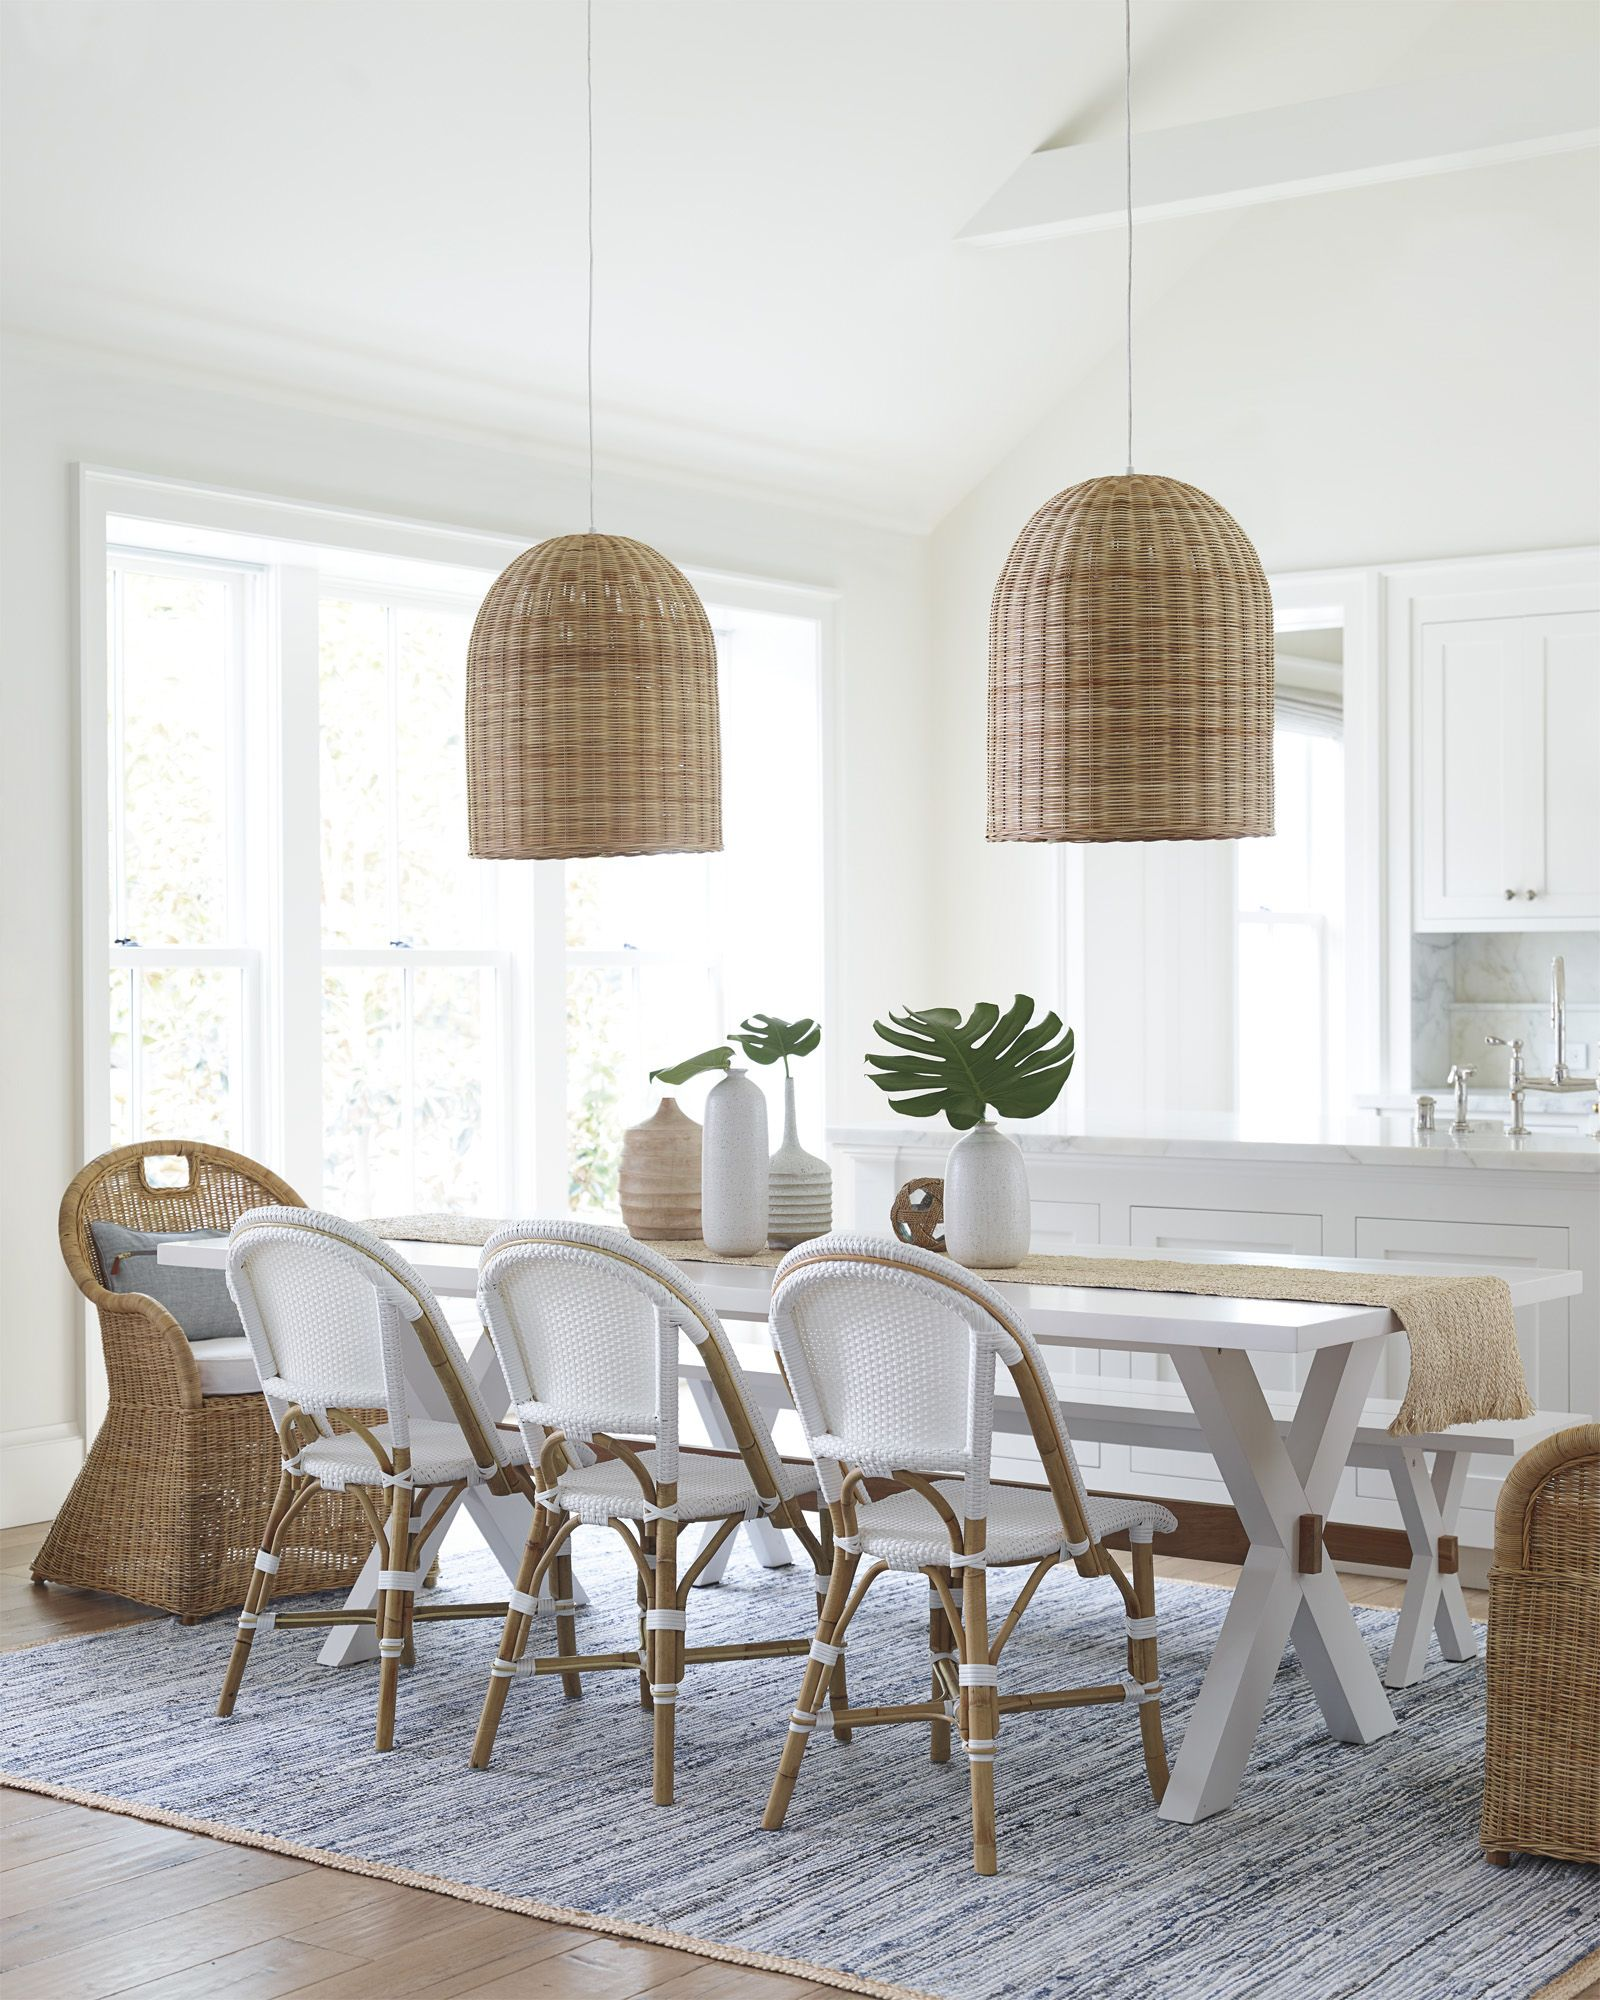 Rattan Lighting From Bold Chandeliers